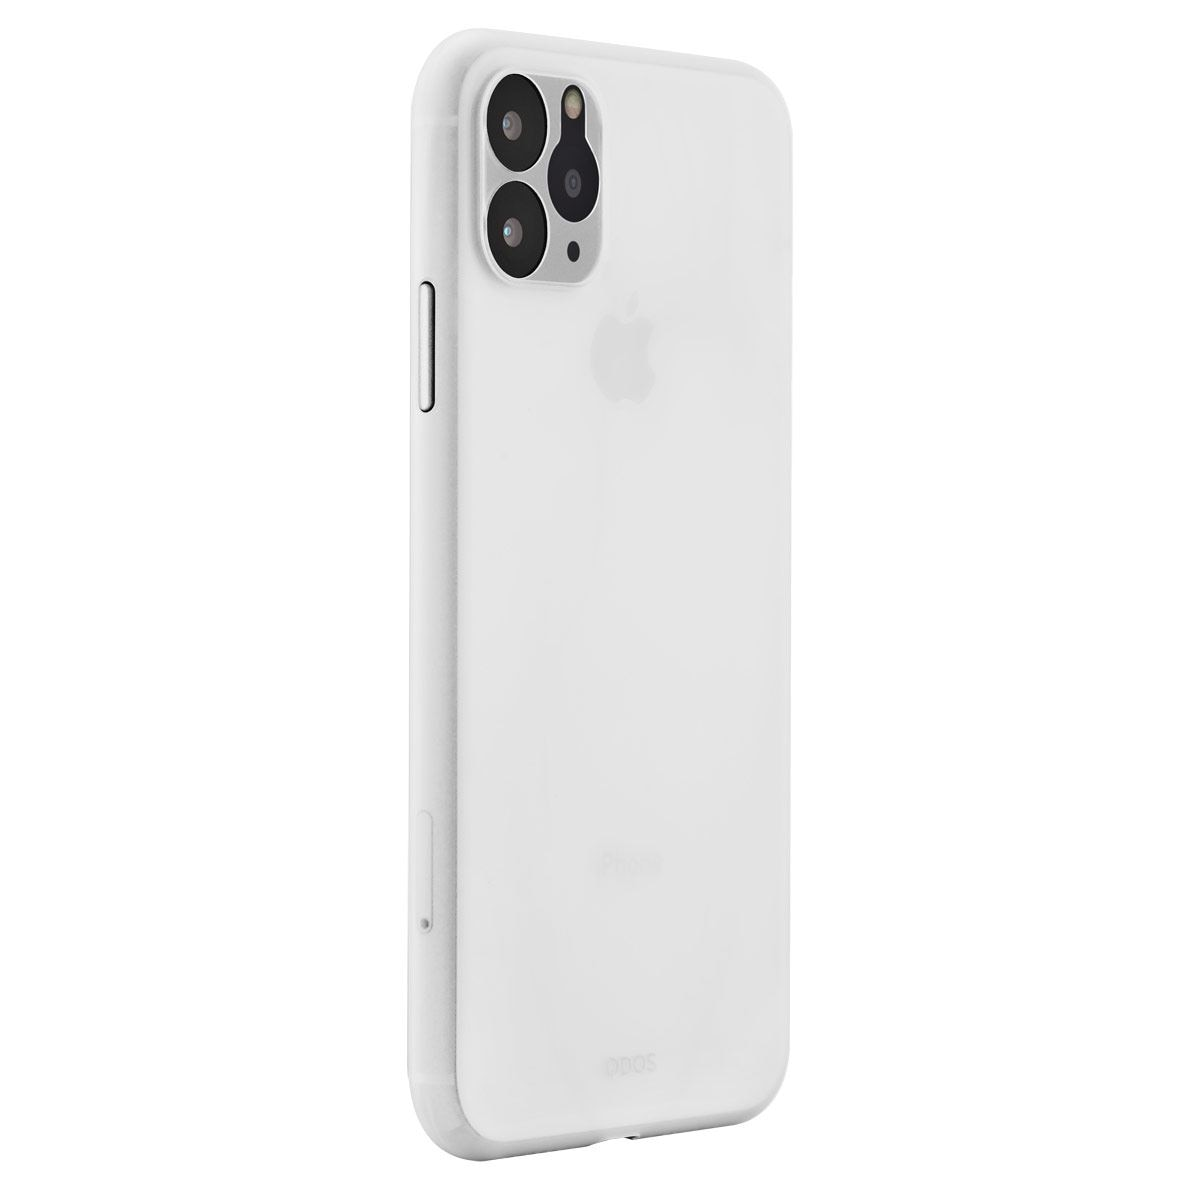 Funda para iPhone 11 Pro Max Transparente Mask Protect Qdos